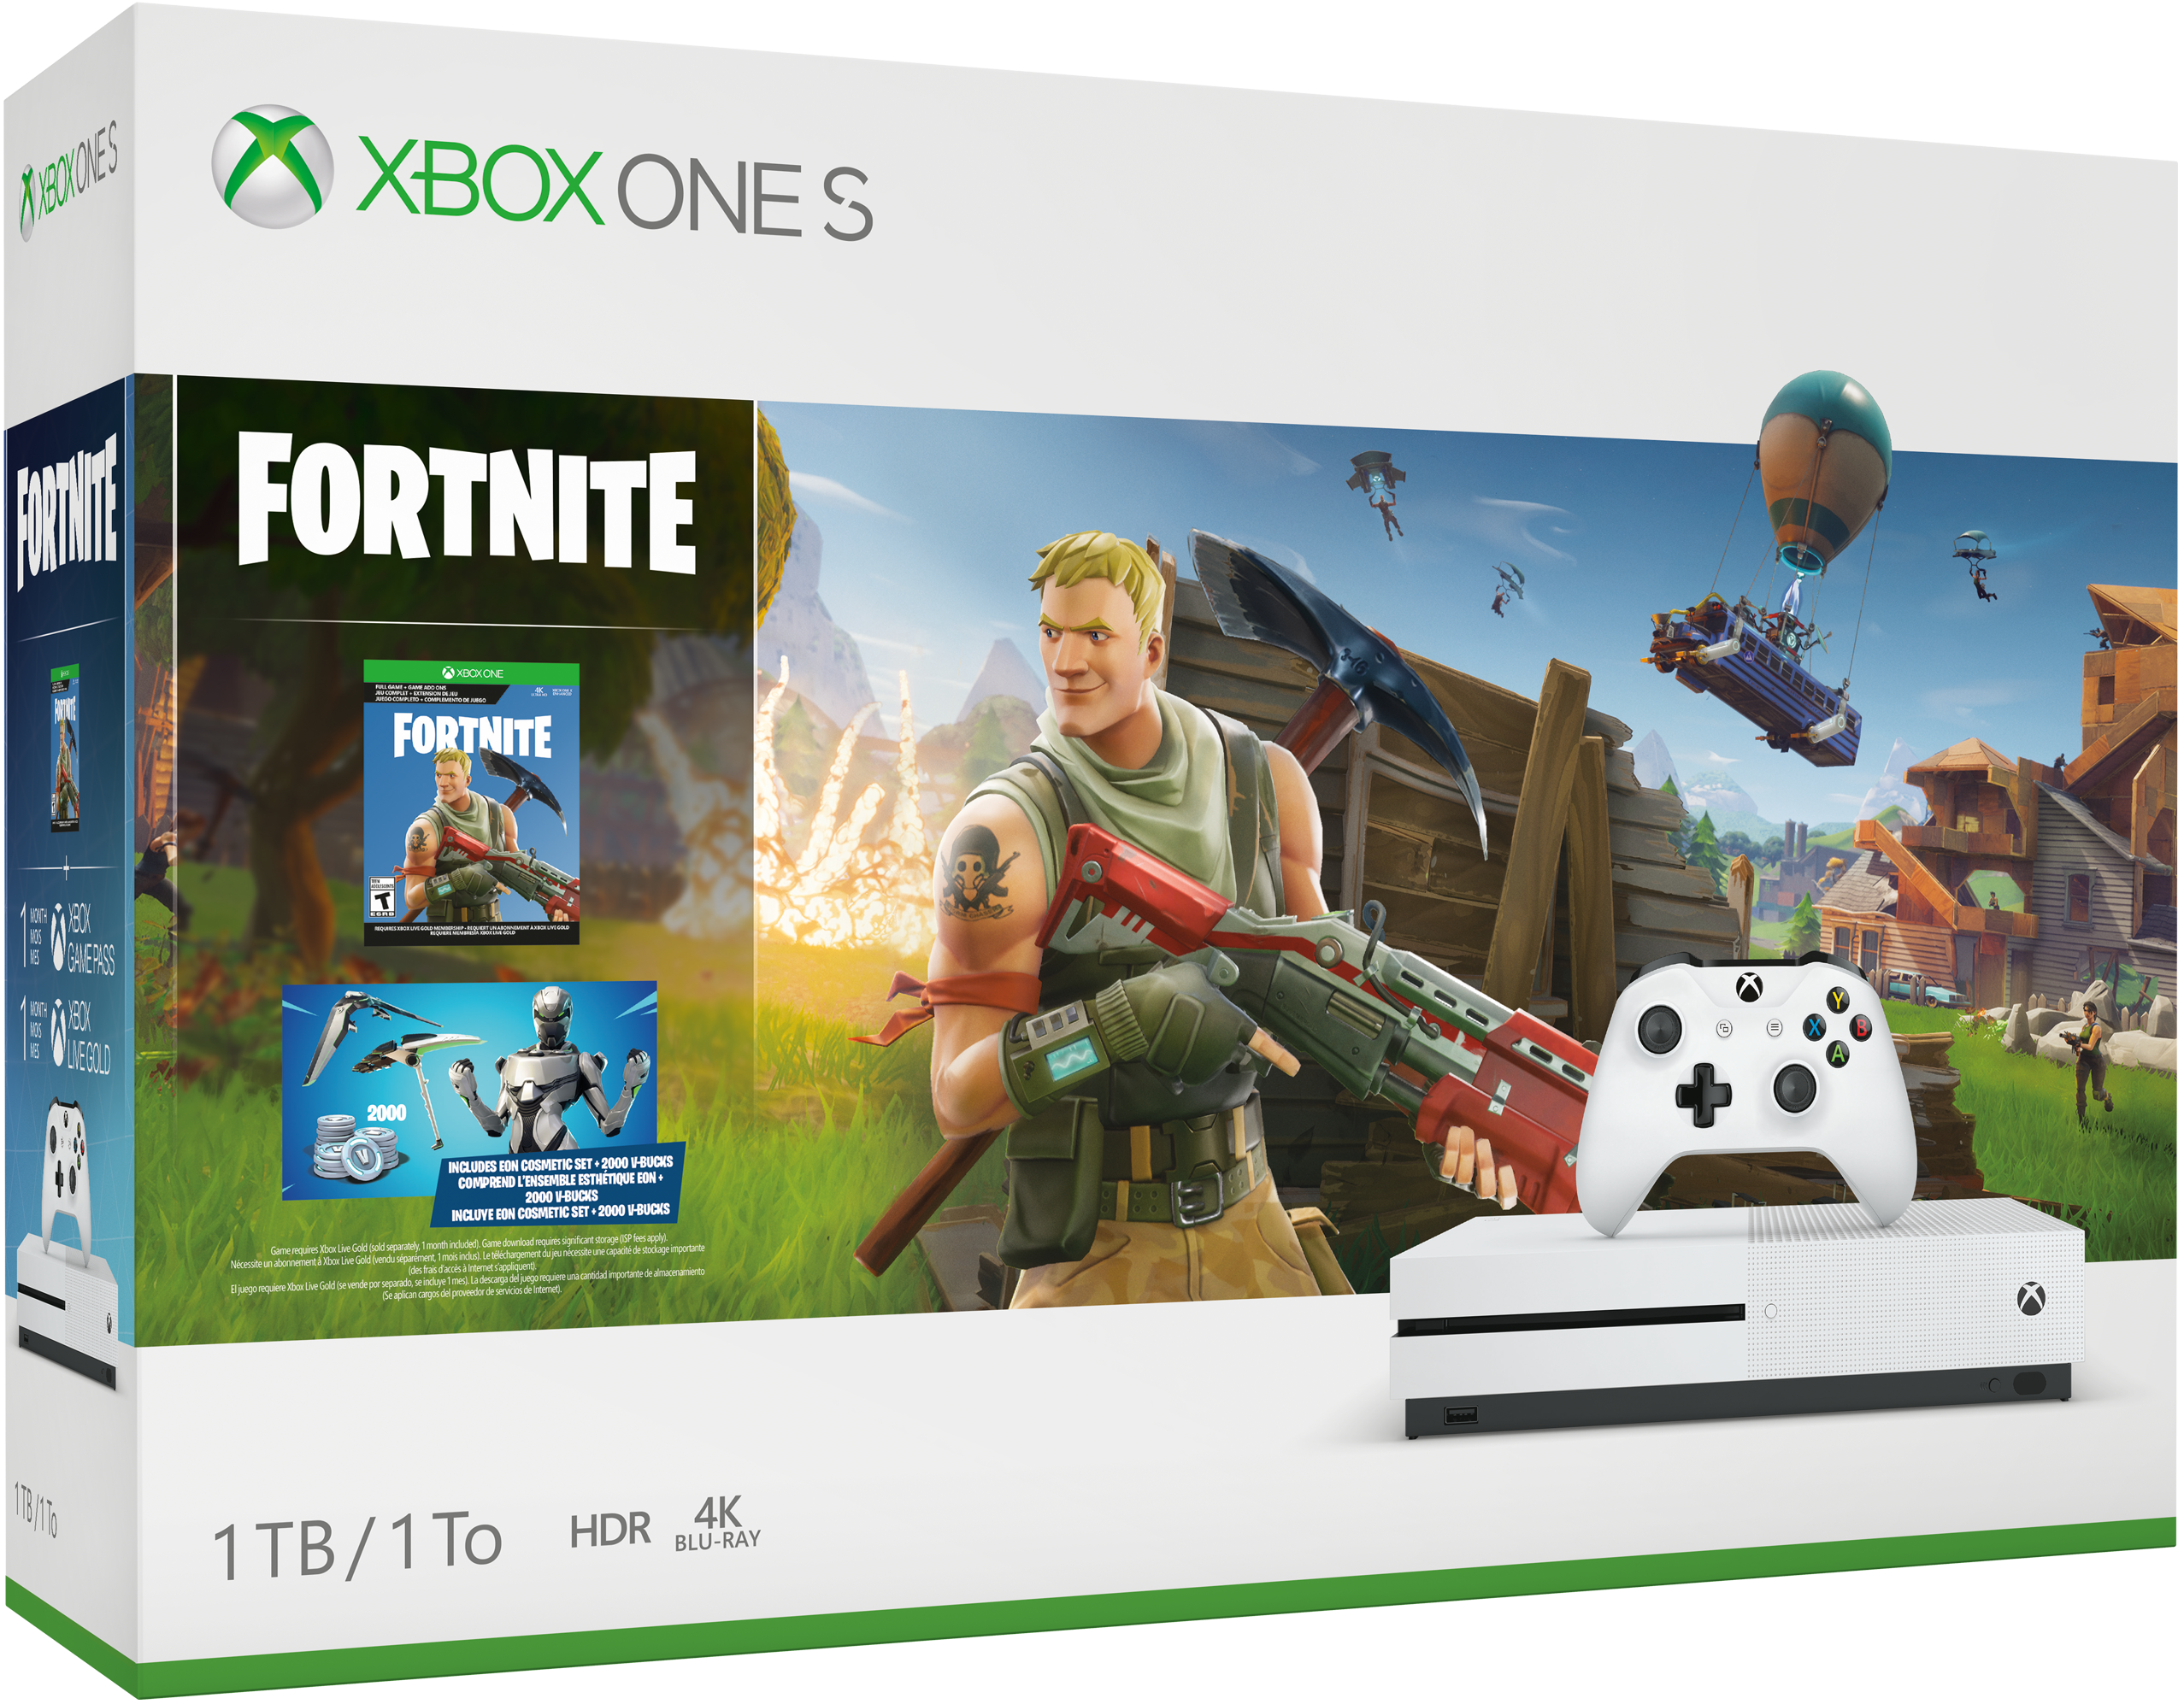 Xbox Xbox One And Xbox One S Consoles Games Accessories